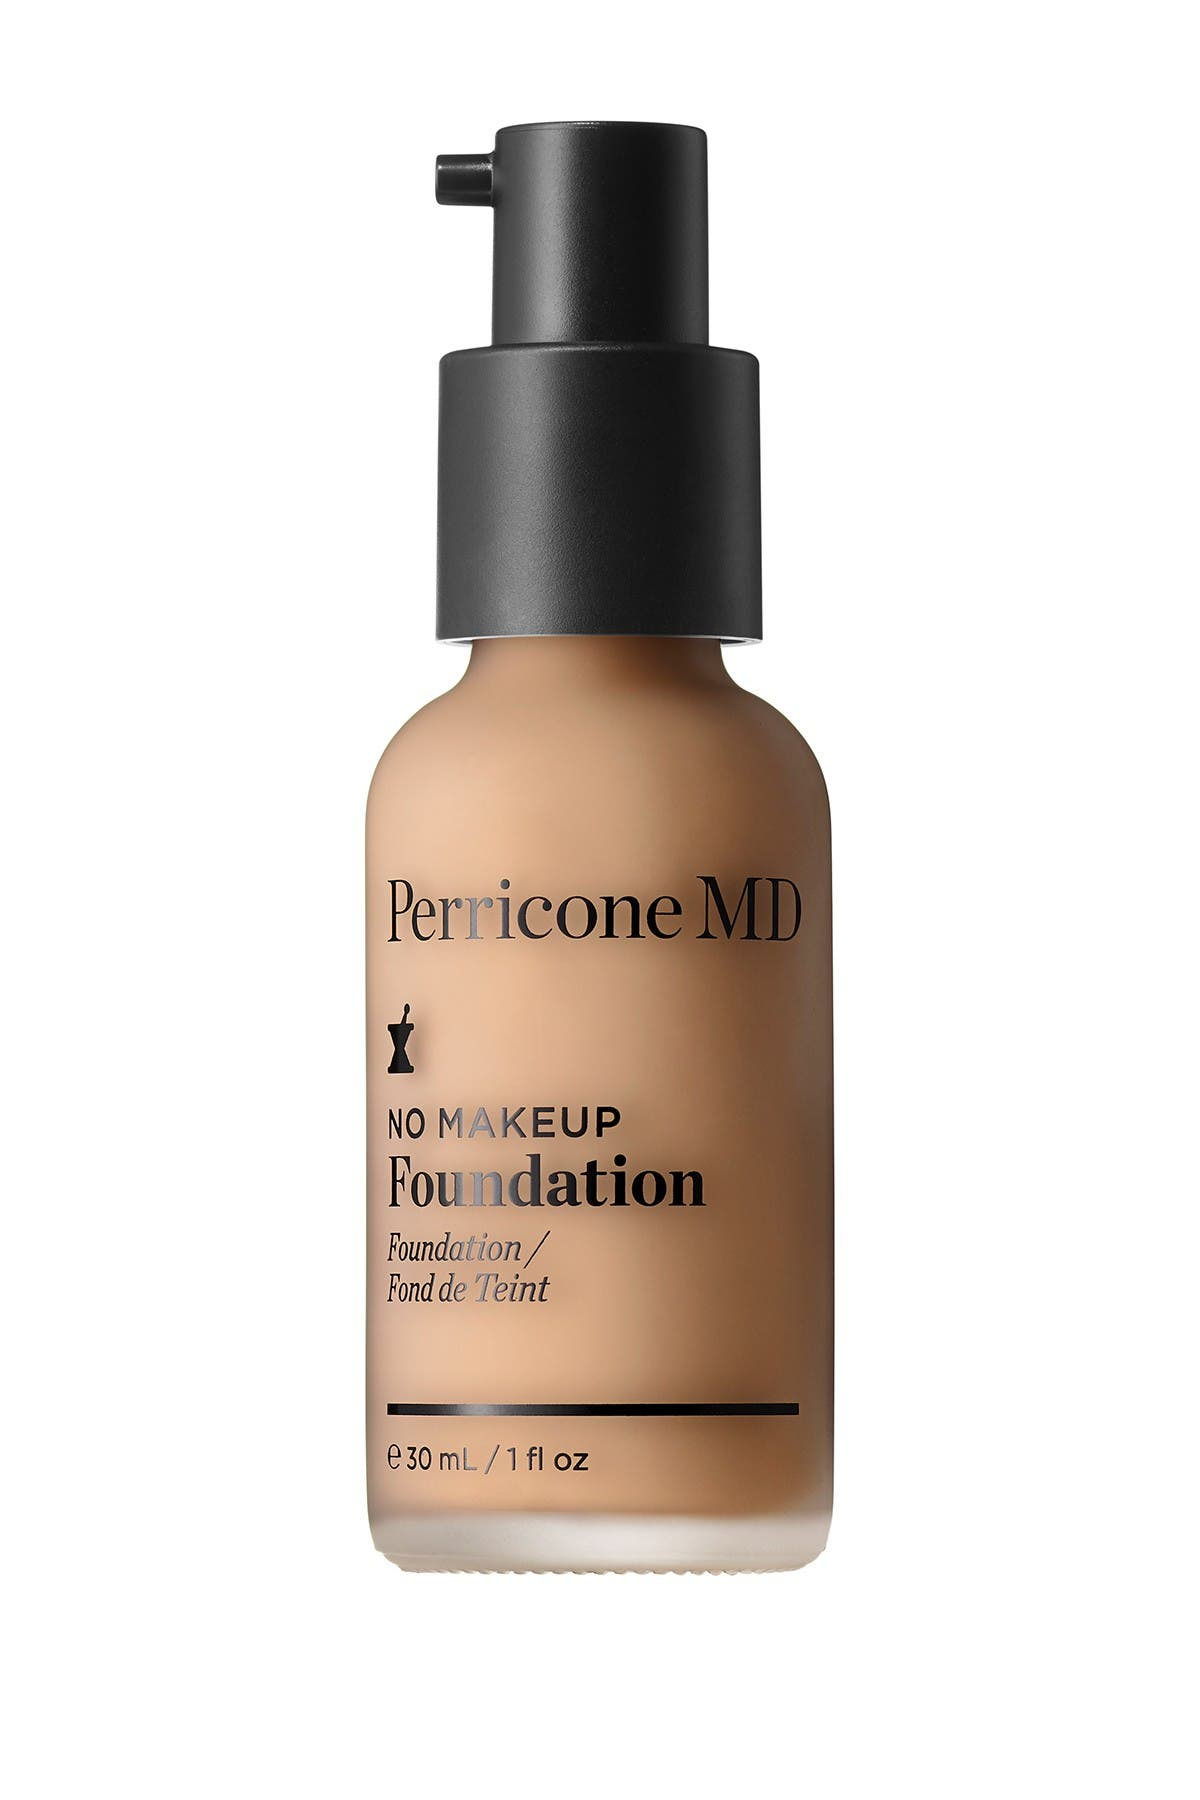 Image of Perricone MD No Makeup Foundation - Beige